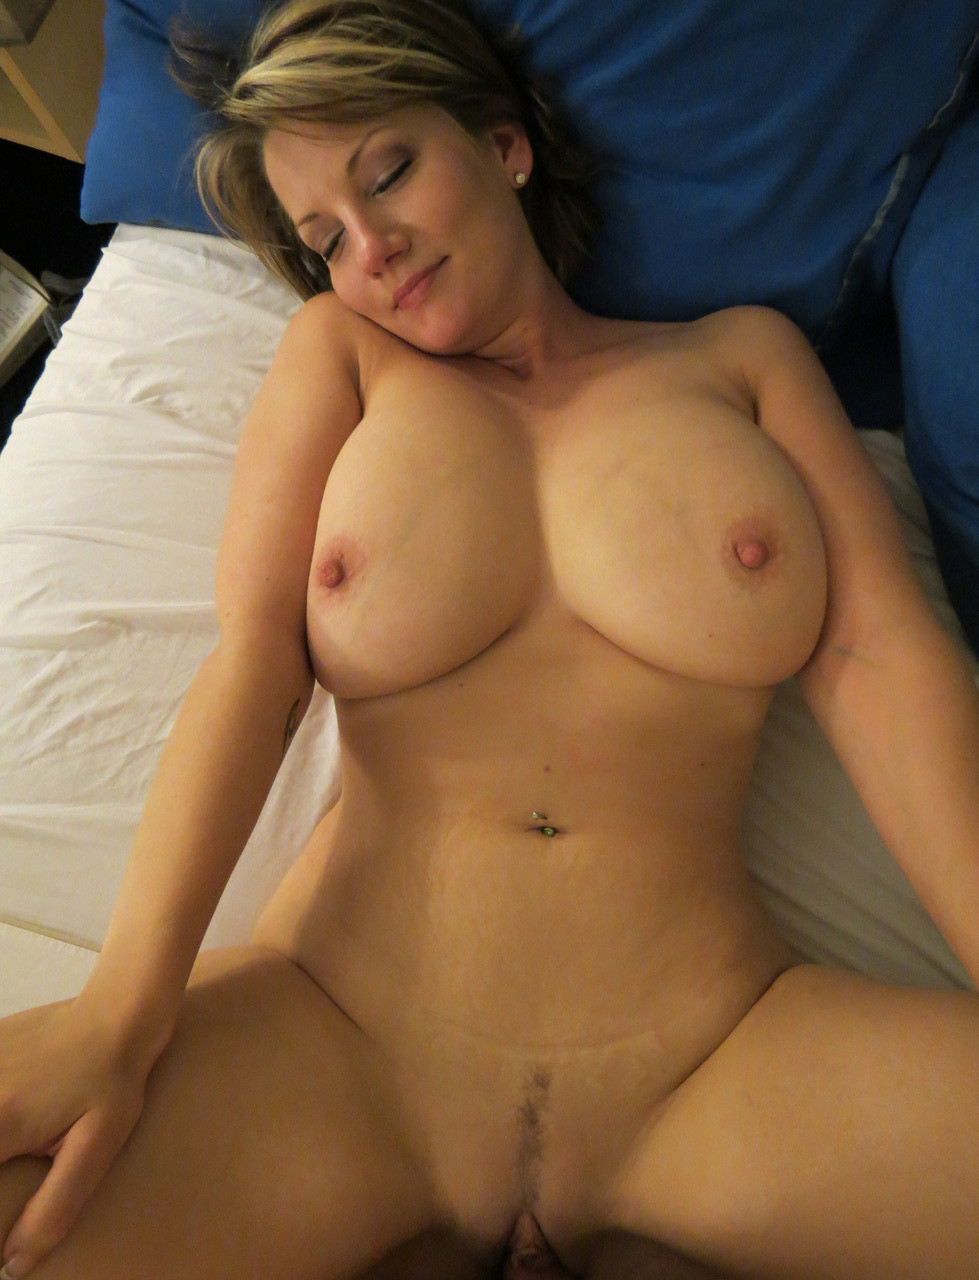 from Justus sexy milfs sex at home